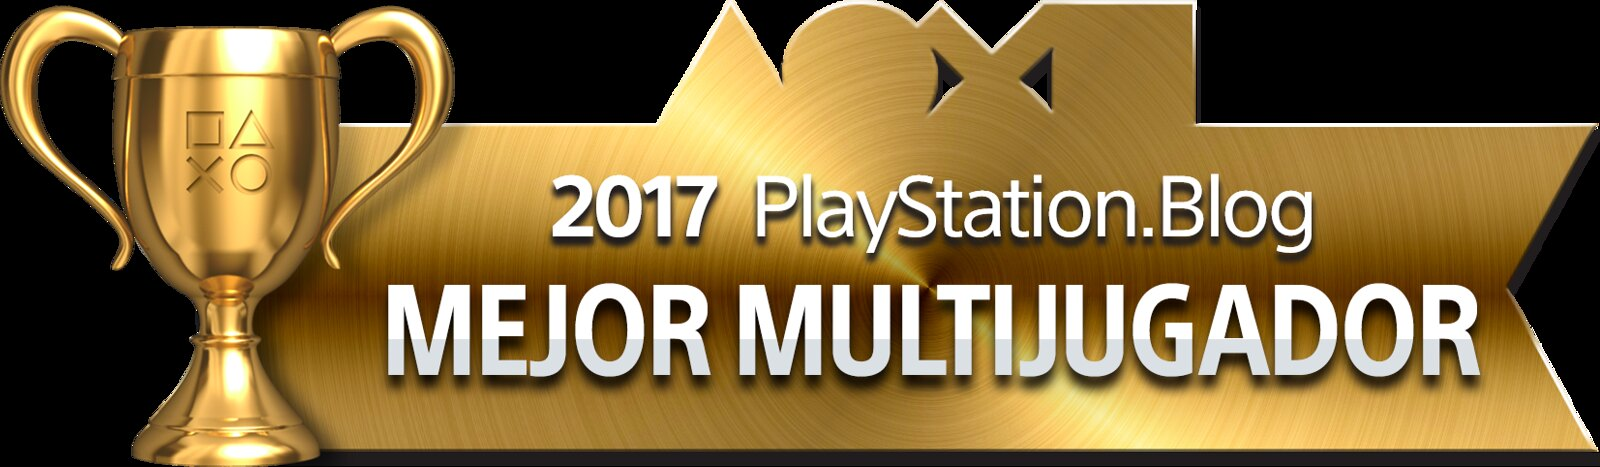 PlayStation Blog Game of the Year 2017 - Best Multiplayer (Gold)